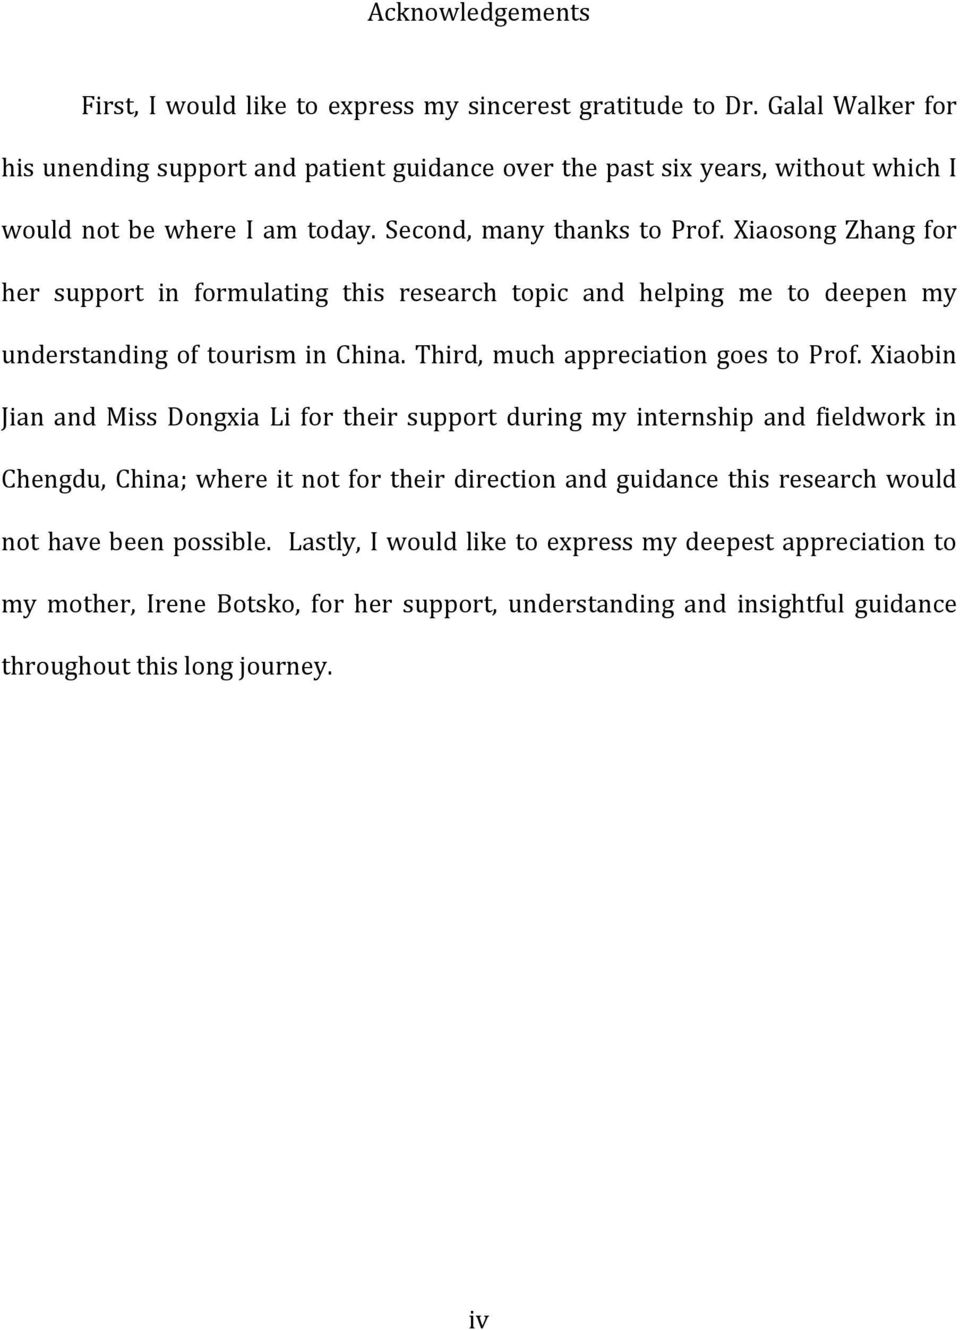 Xiaosong Zhang for her support in formulating this research topic and helping me to deepen my understanding of tourism in China. Third, much appreciation goes to Prof.